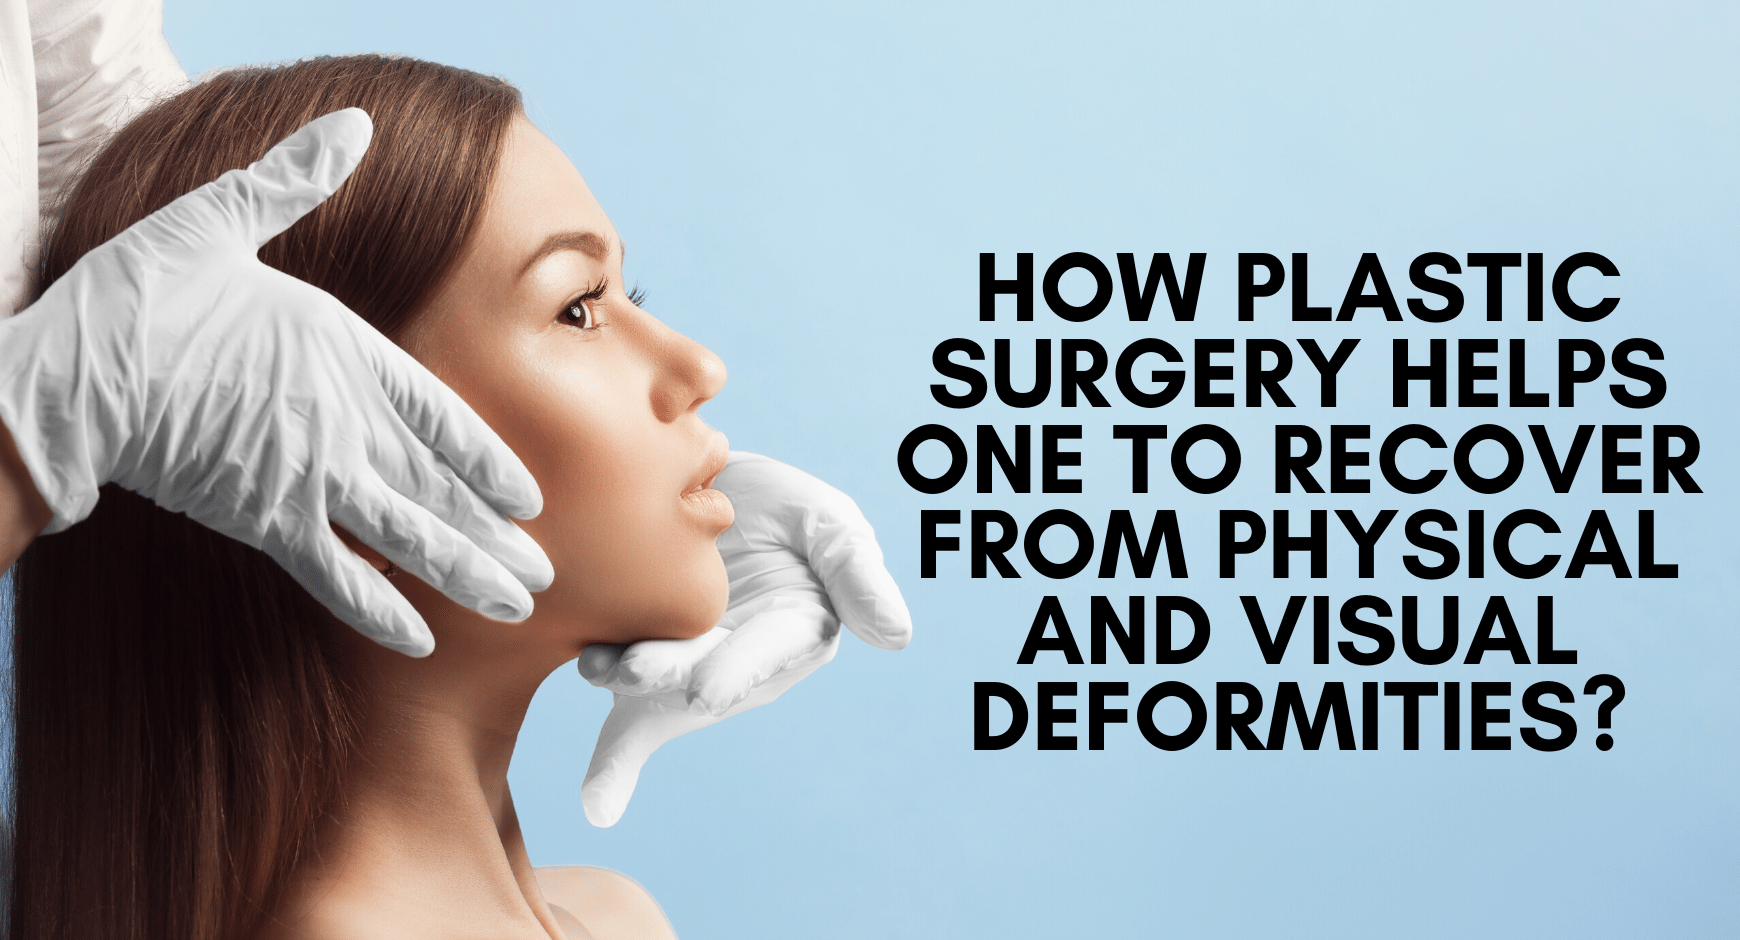 How plastic surgery helps one to recover from physical and visual deformities?